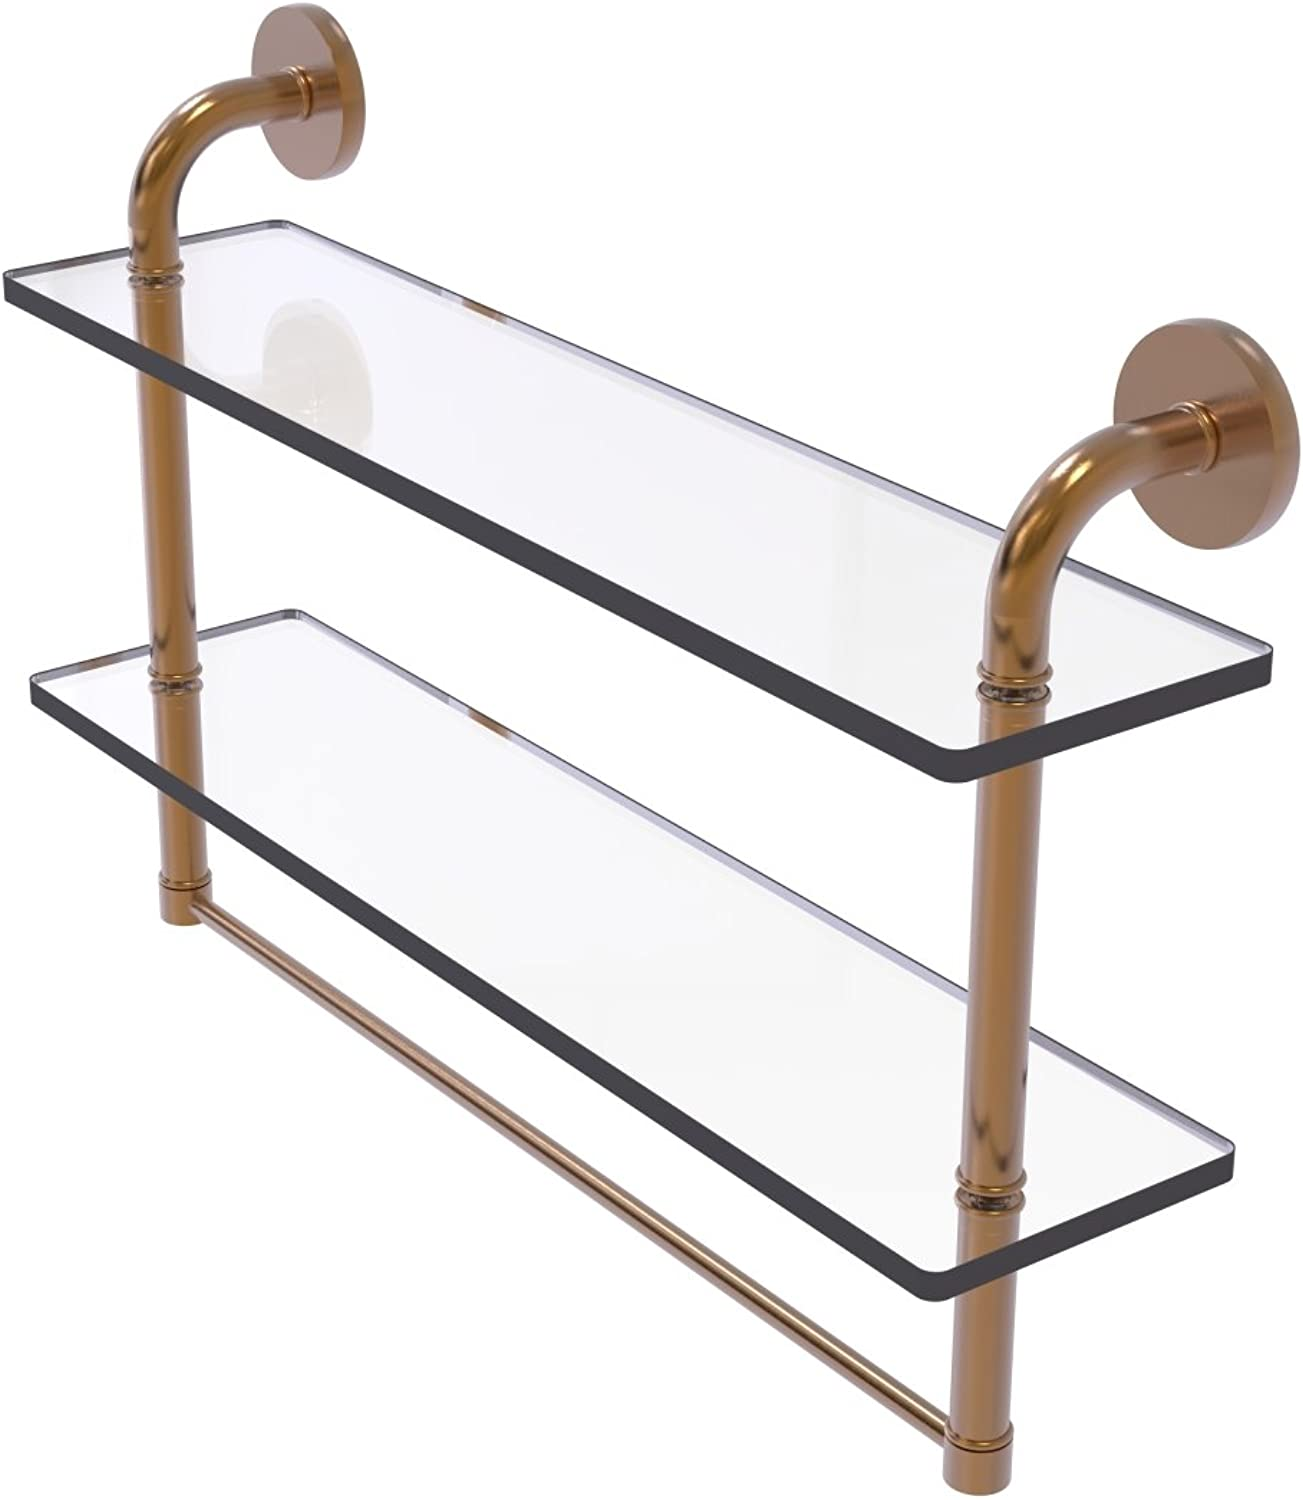 Allied Brass Remi Collection 22 Inch Two Tiered Glass Shelf with Integrated Towel Bar, RM-2-22TB-BBR